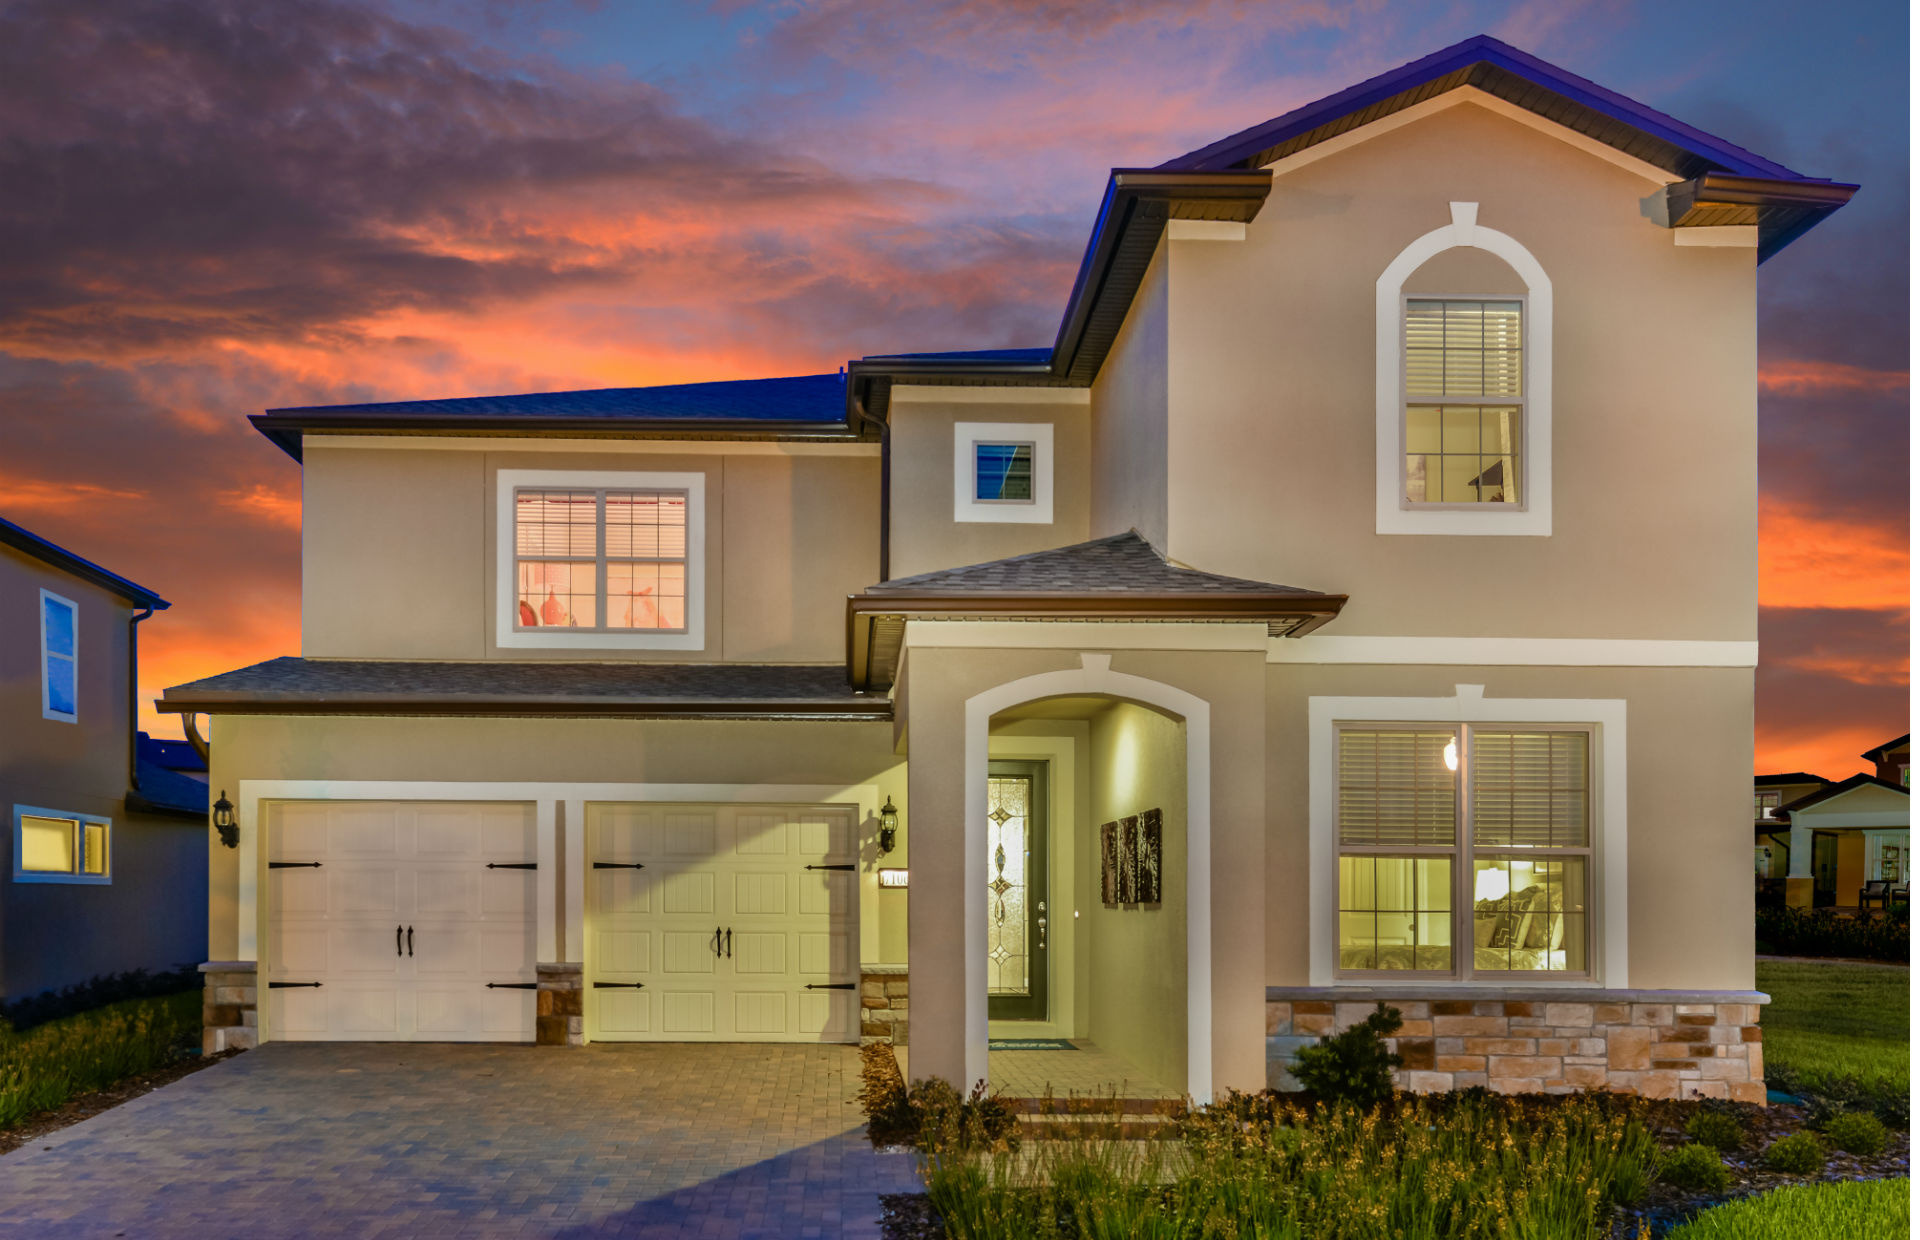 New Homes At Lakeview Pointe Winter Garden Fl Pulte